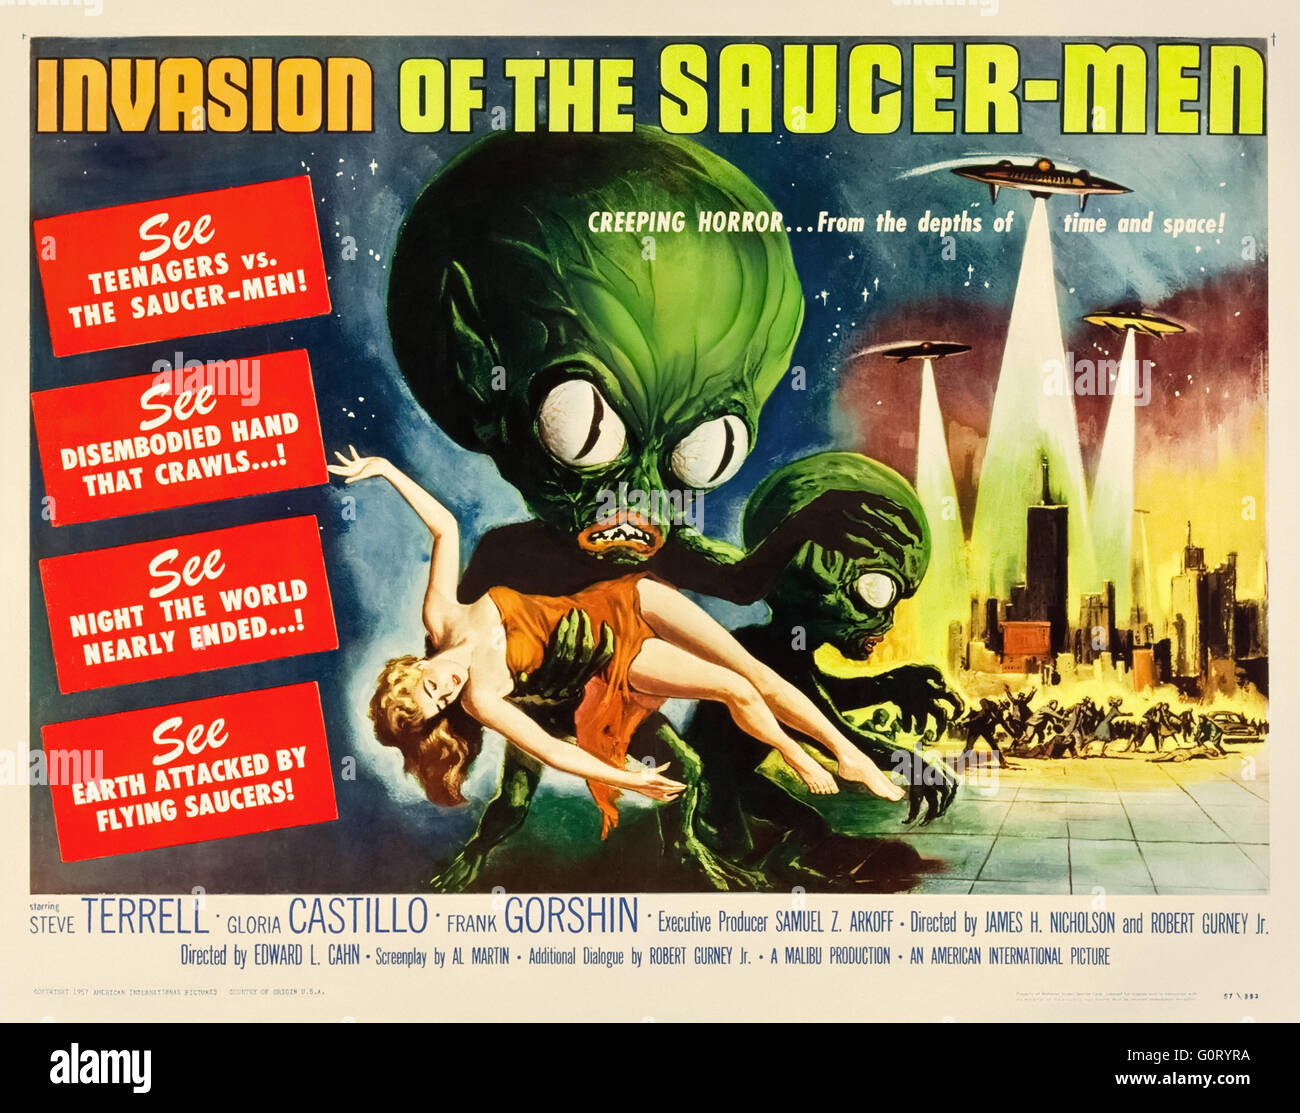 'Invasion of the Saucer-Men' (1957) directed by Edward L. Cahn and starring Steven Terrell, Gloria Castillo - Stock Image